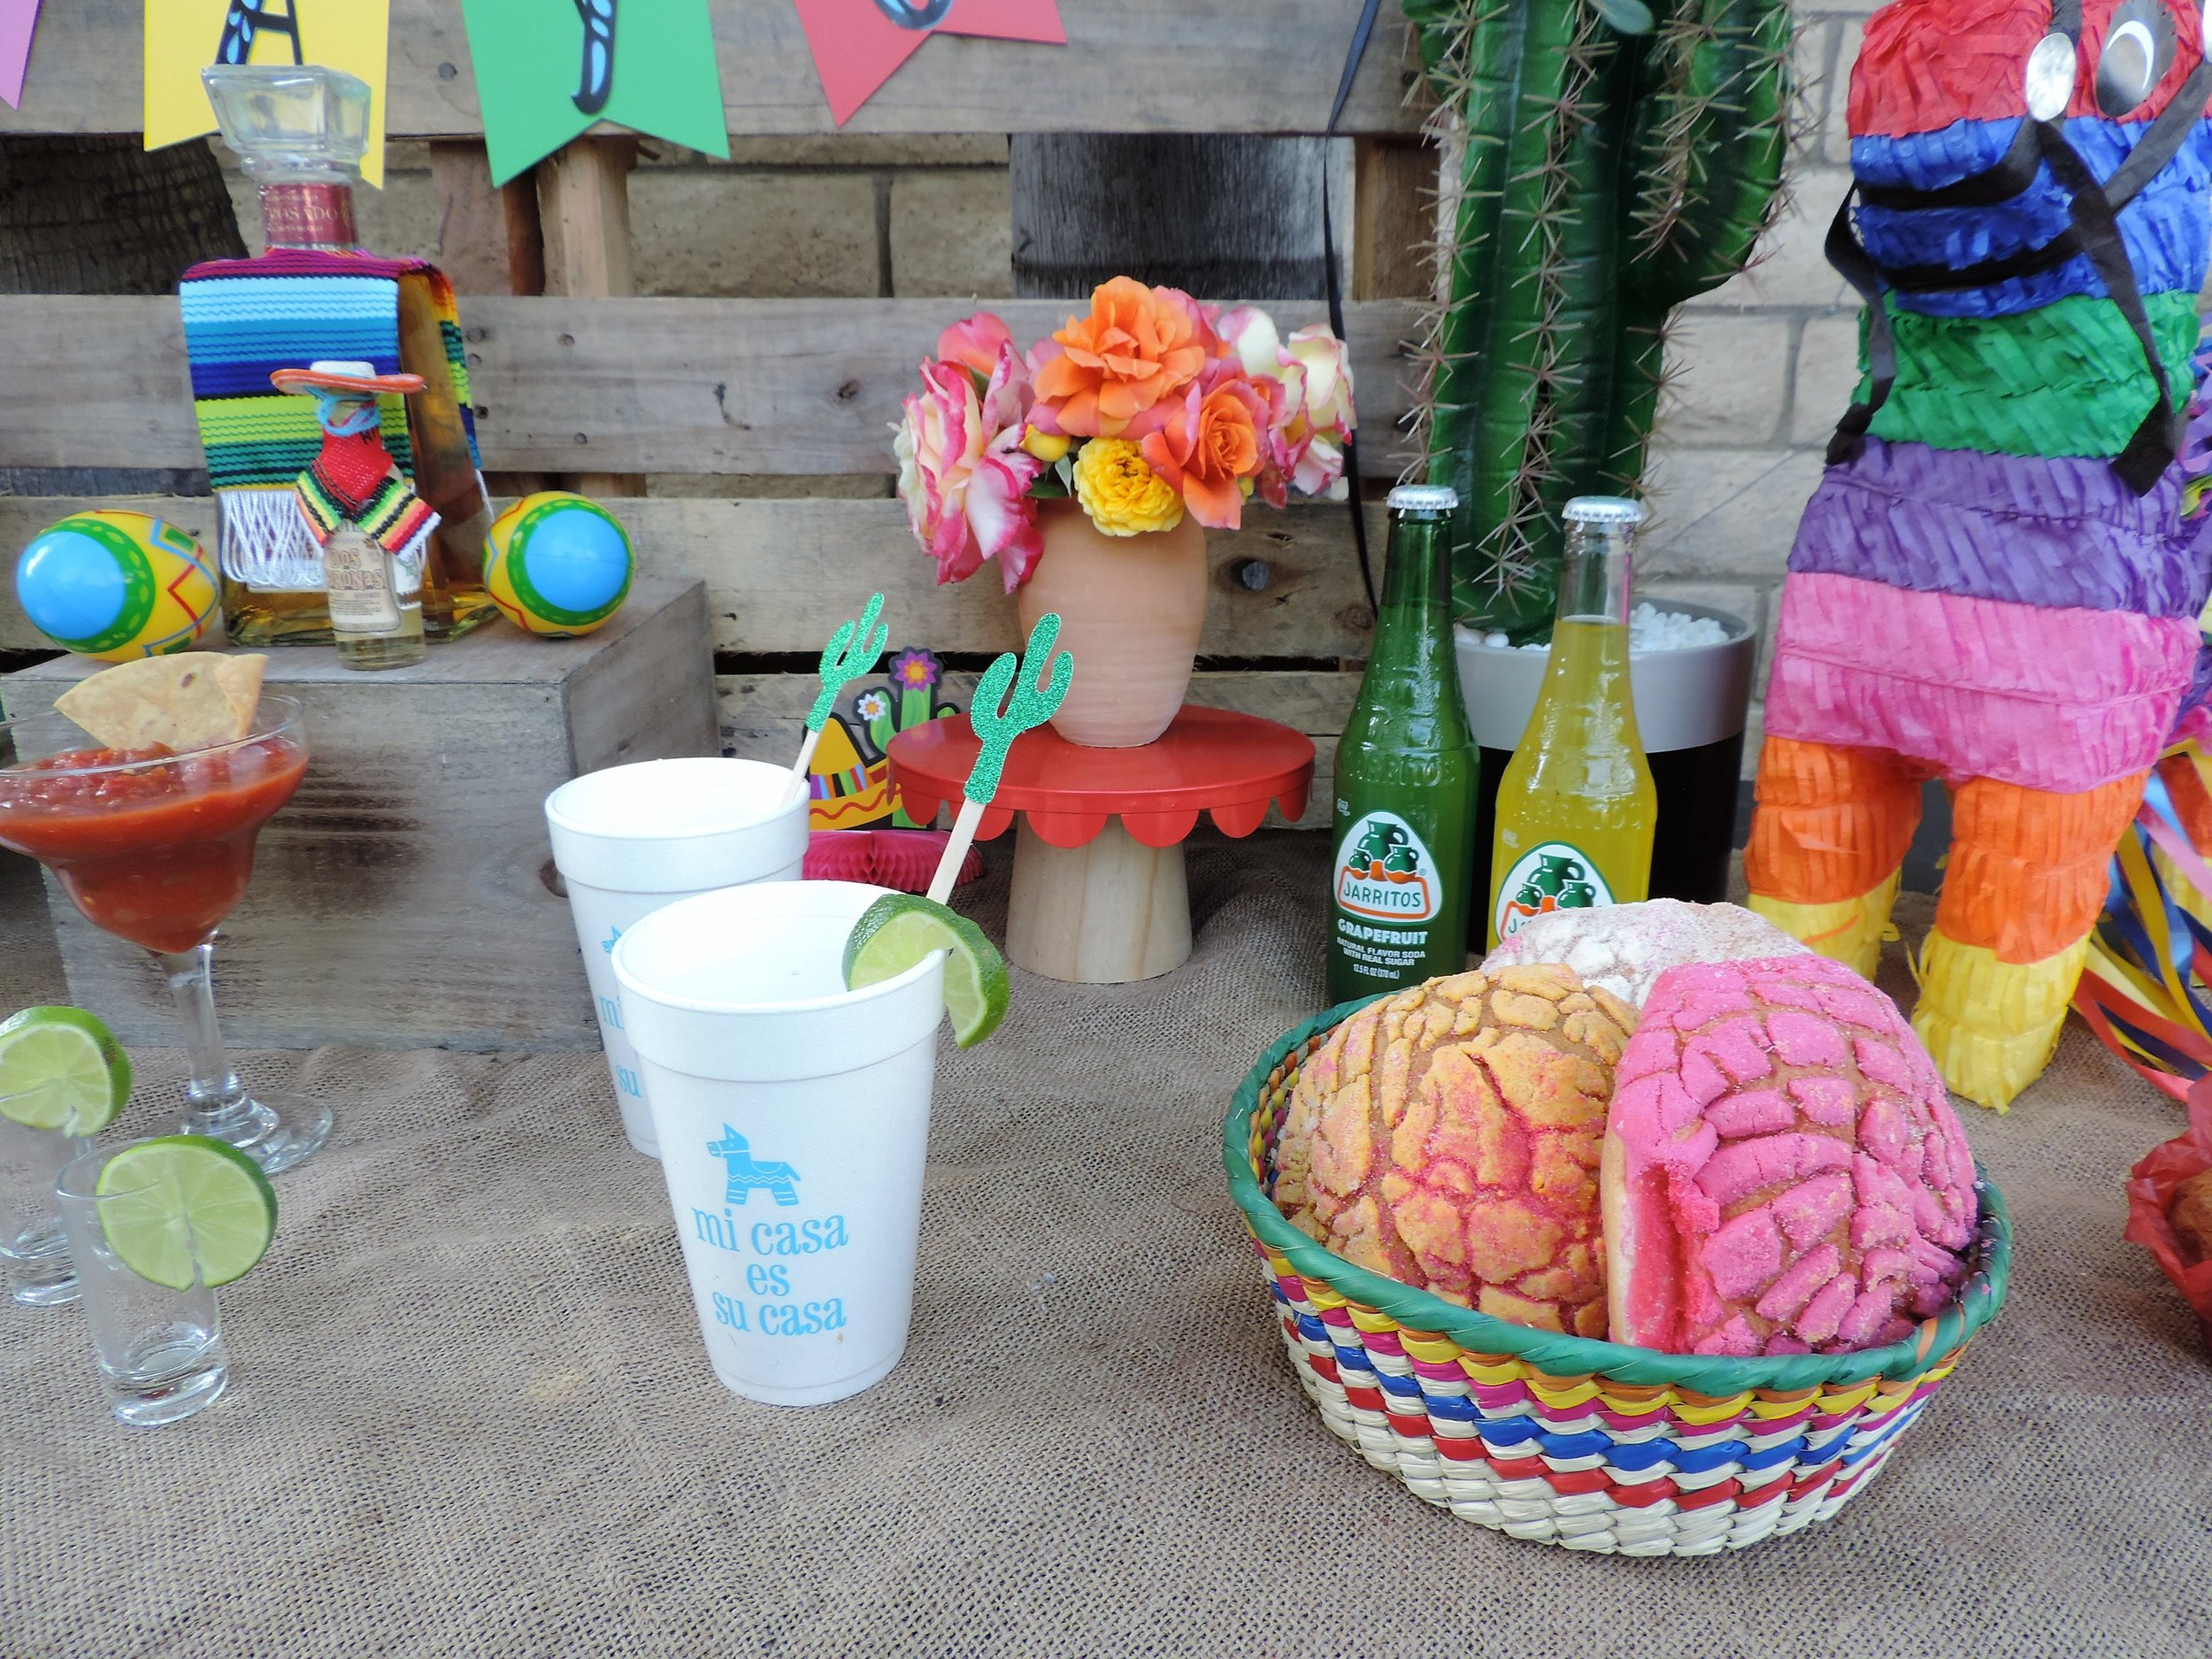 Pan Dulce.-Tequila Party Table-Cinco De Mayo Party-Tequila Party-Fiesta Party-Fiesta Drink Table-Tequila Party Ideas-Drinko De Mayo-Cinco De Mayo Party Idea-Mexican Theme Party-Fiesta-Cinco De Mayo Party Ideas and Decor-Taco Party-www.SugarPartiesLA.com